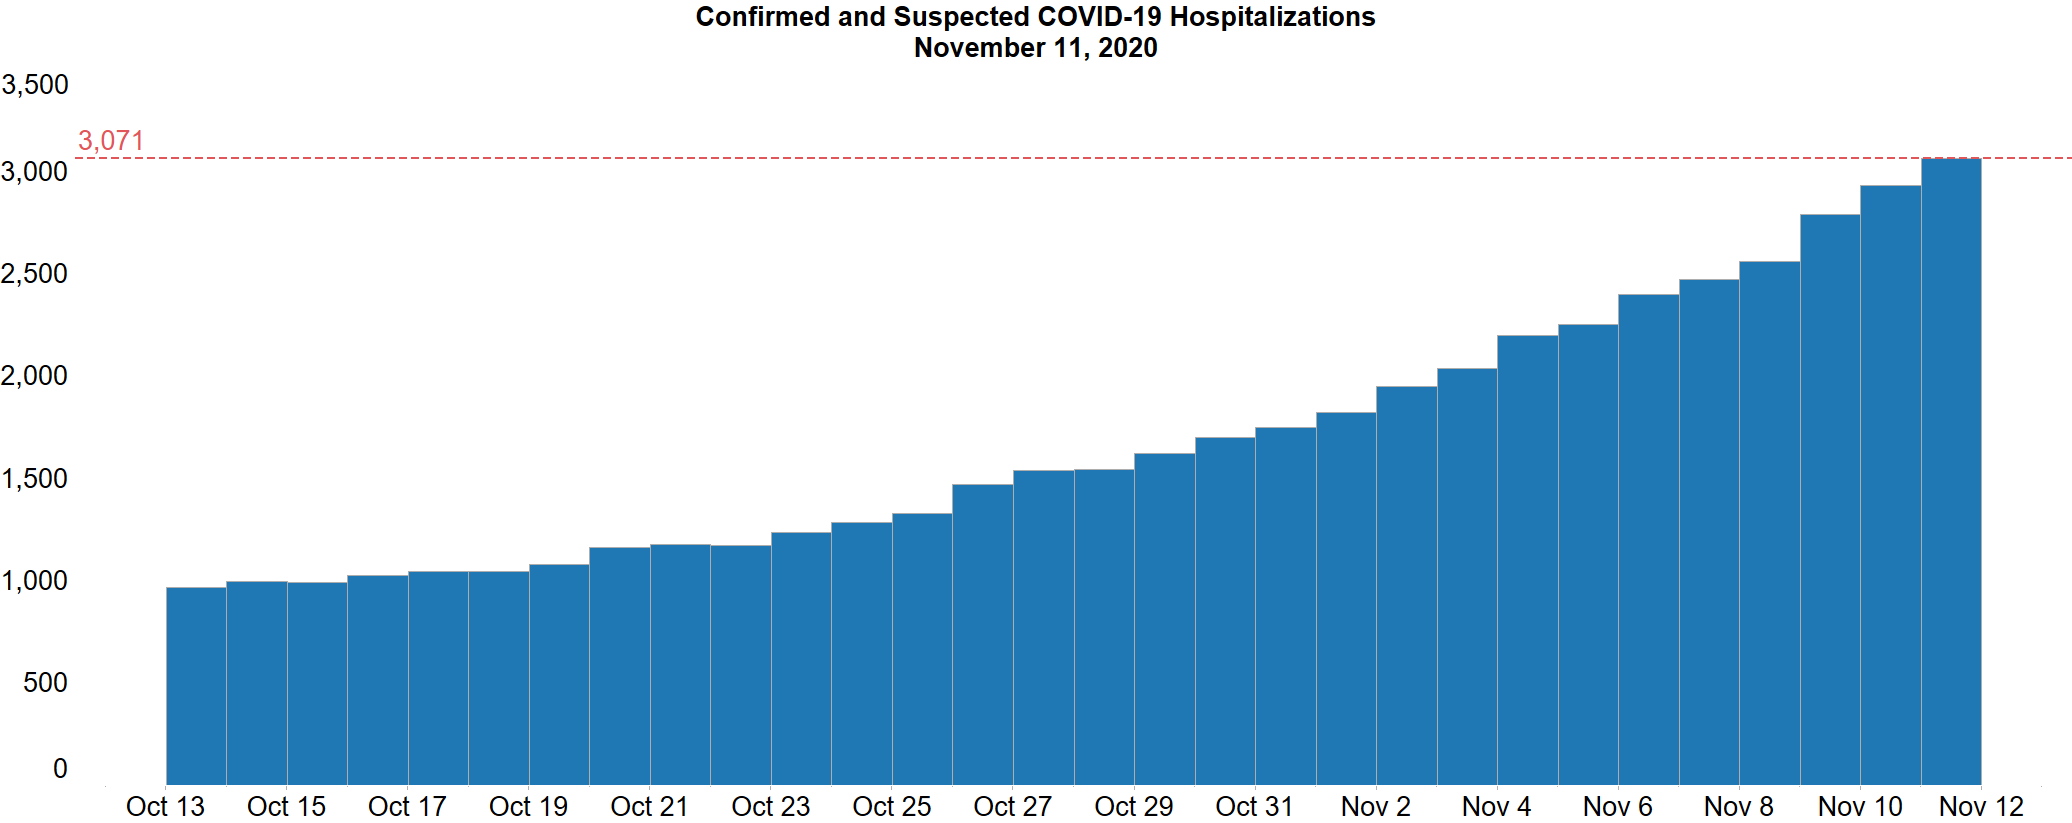 Michigan COVID-19 Hospitalizations Increase at Record Rate; Hospitals Urge Public Vigilance as Holidays Approach